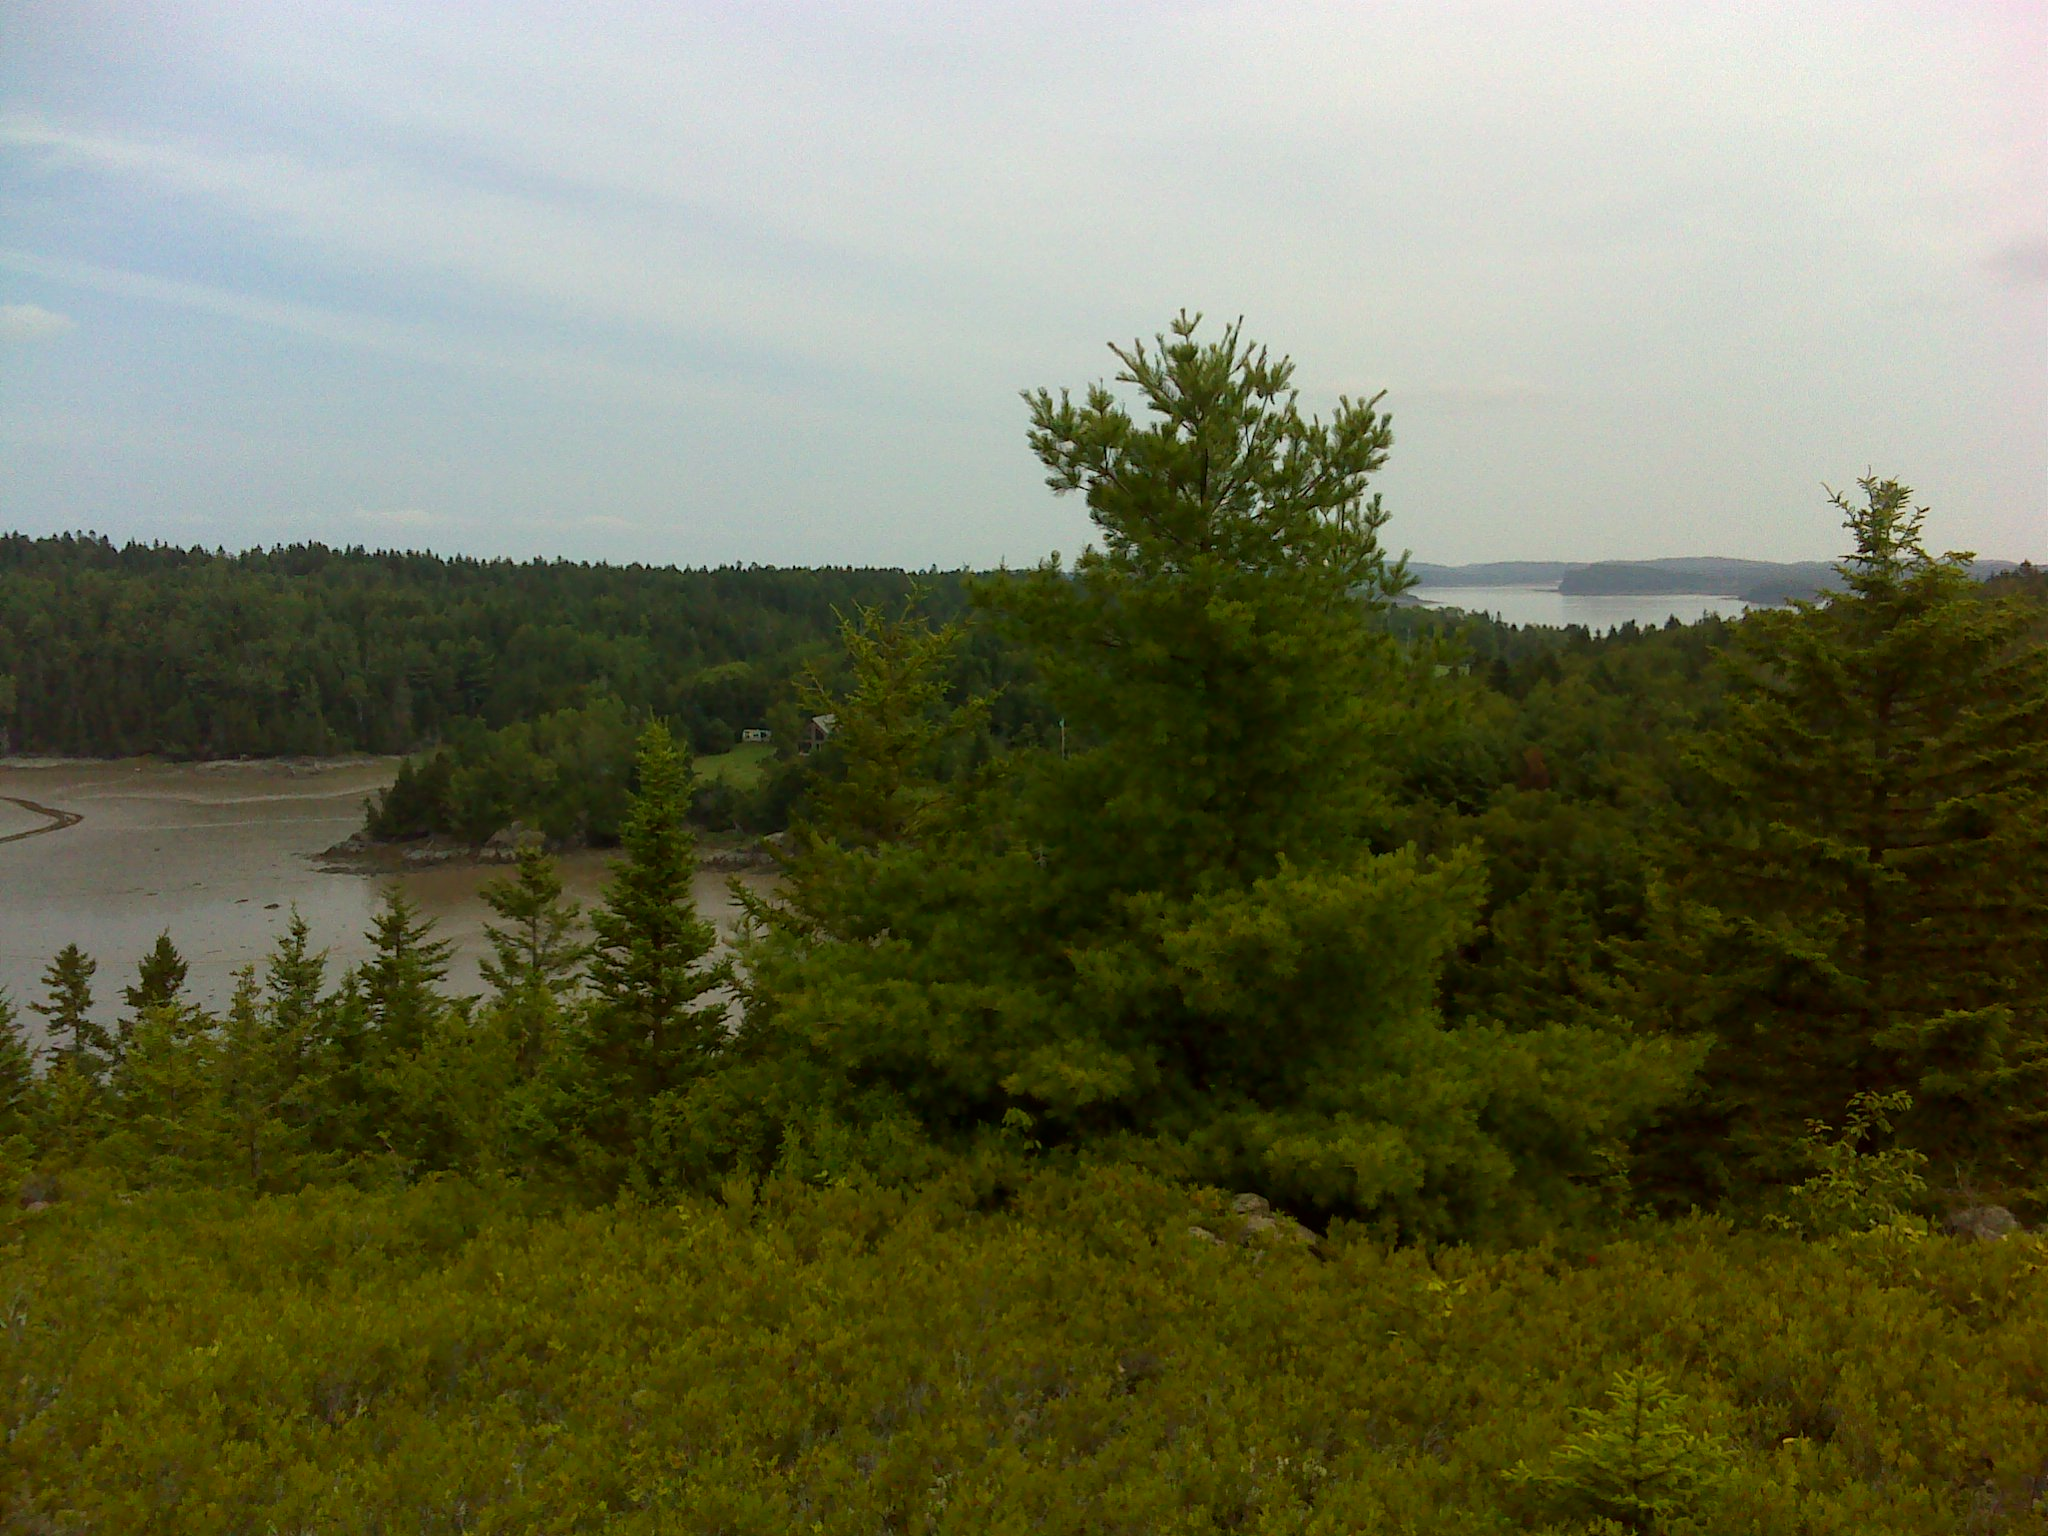 Looking north beyond South Bay to the main body of Cobscook Bay